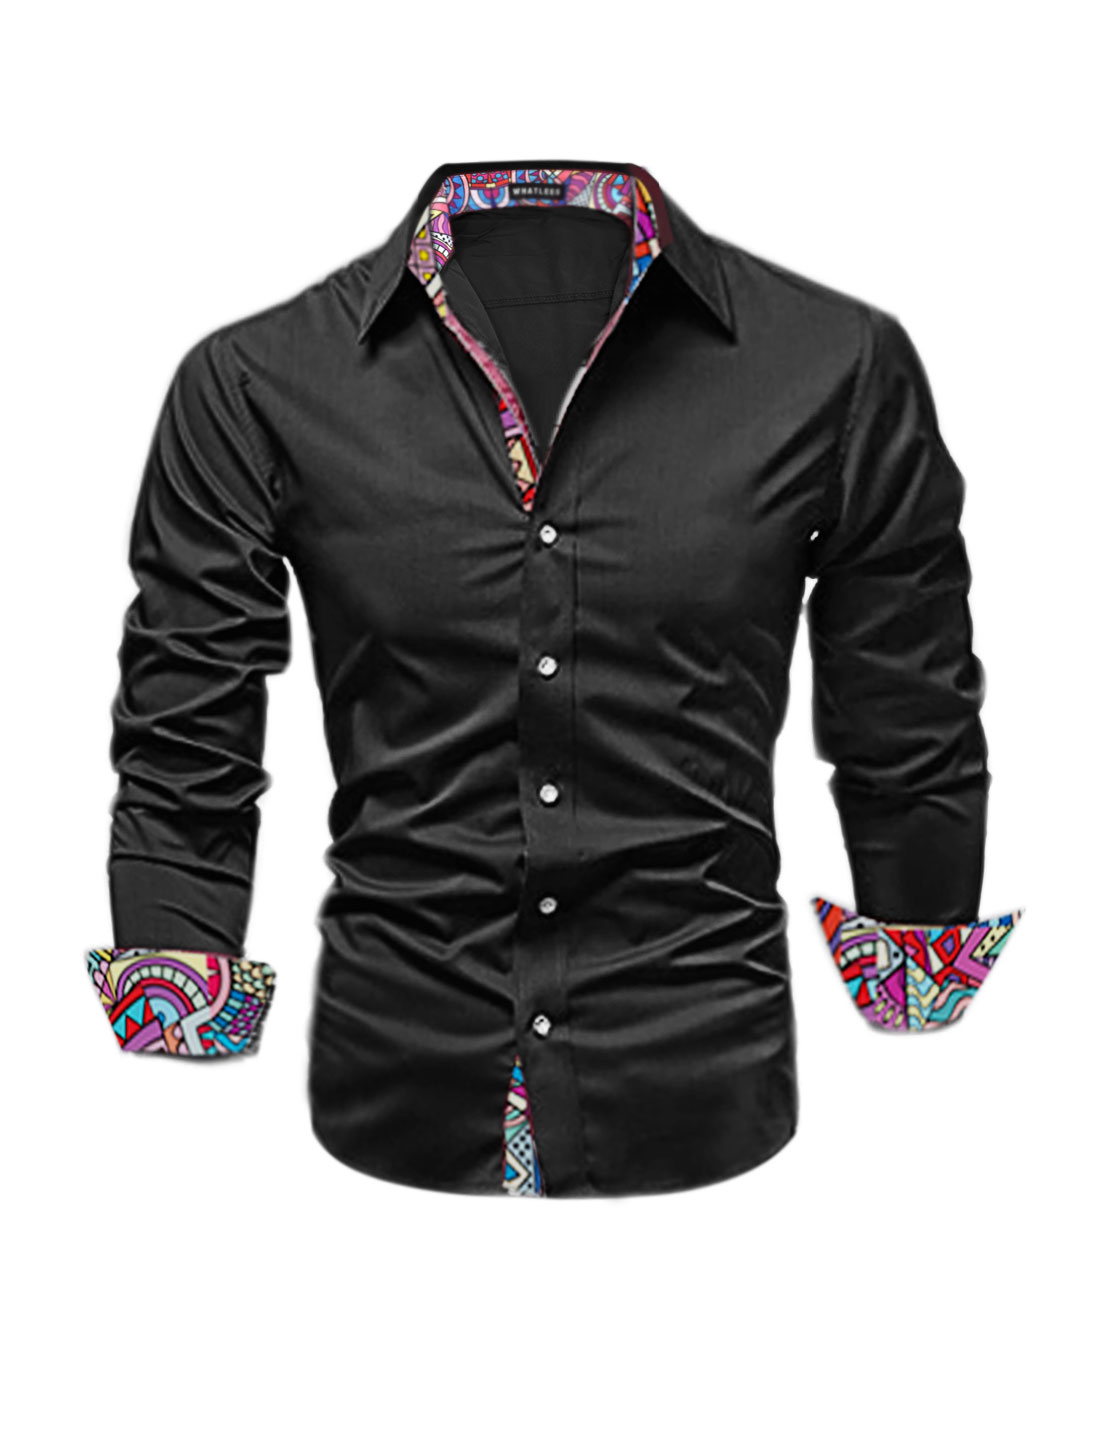 Men Long Sleeves Geometric Prints Button Down Casual Shirt Black M